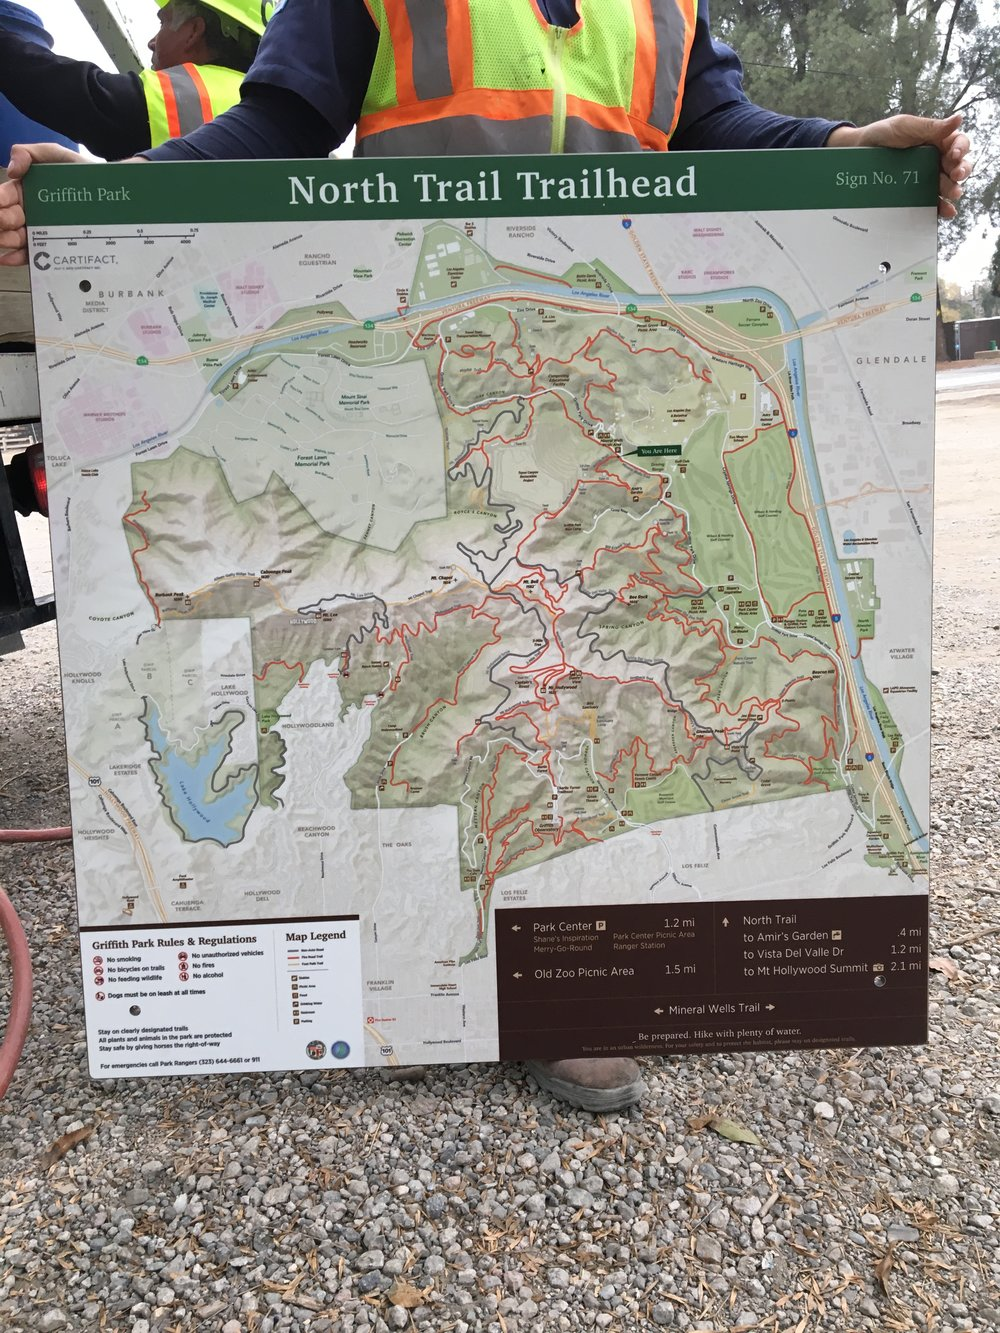 Installing the large map signs